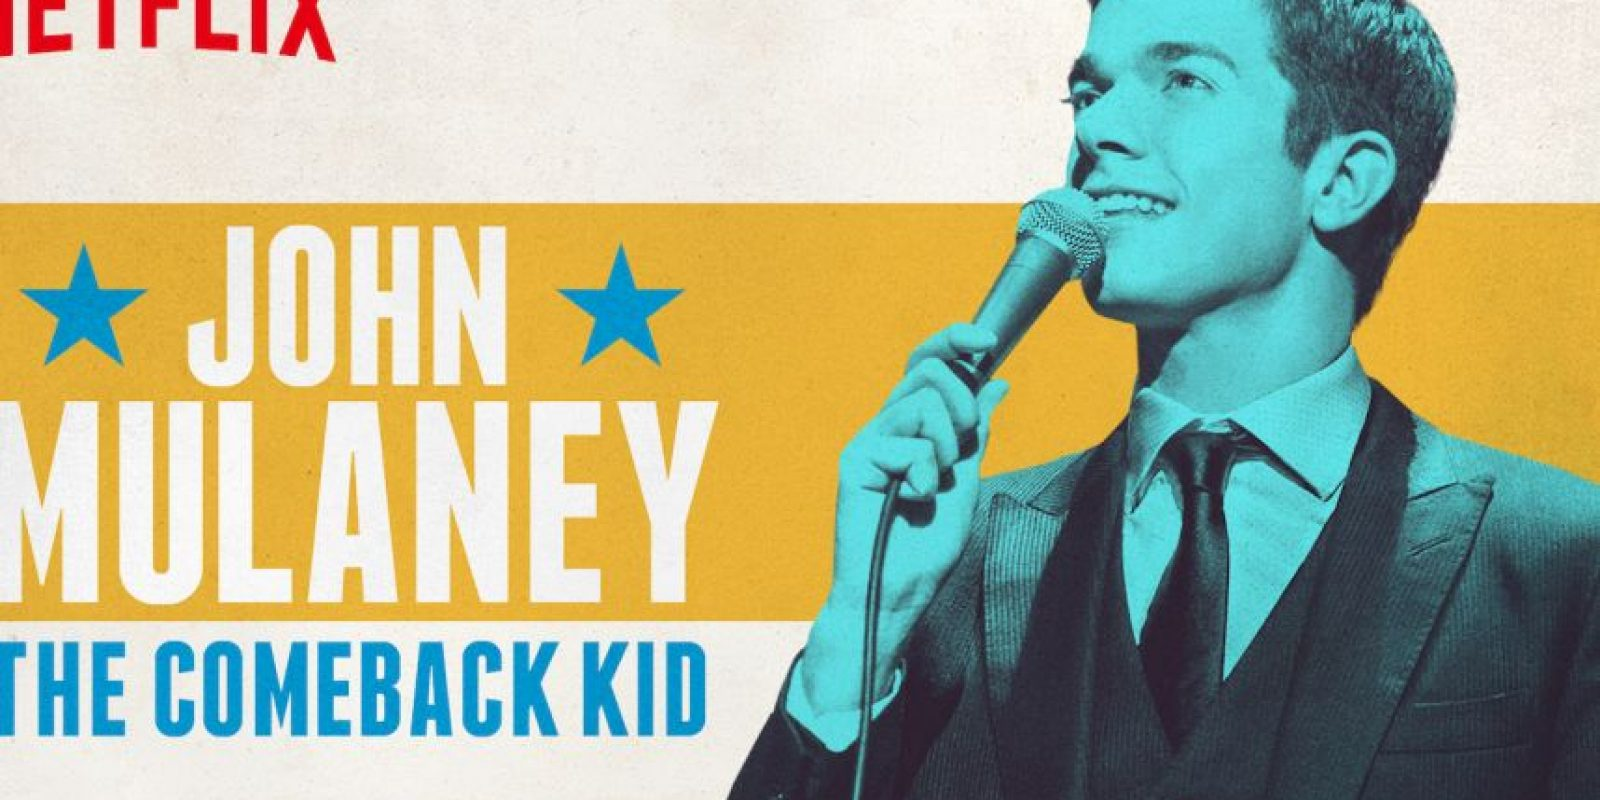 """John Mukaney, The comback kid"" – Disponible a partir del 13 de noviembre. Foto: vía Netflix"